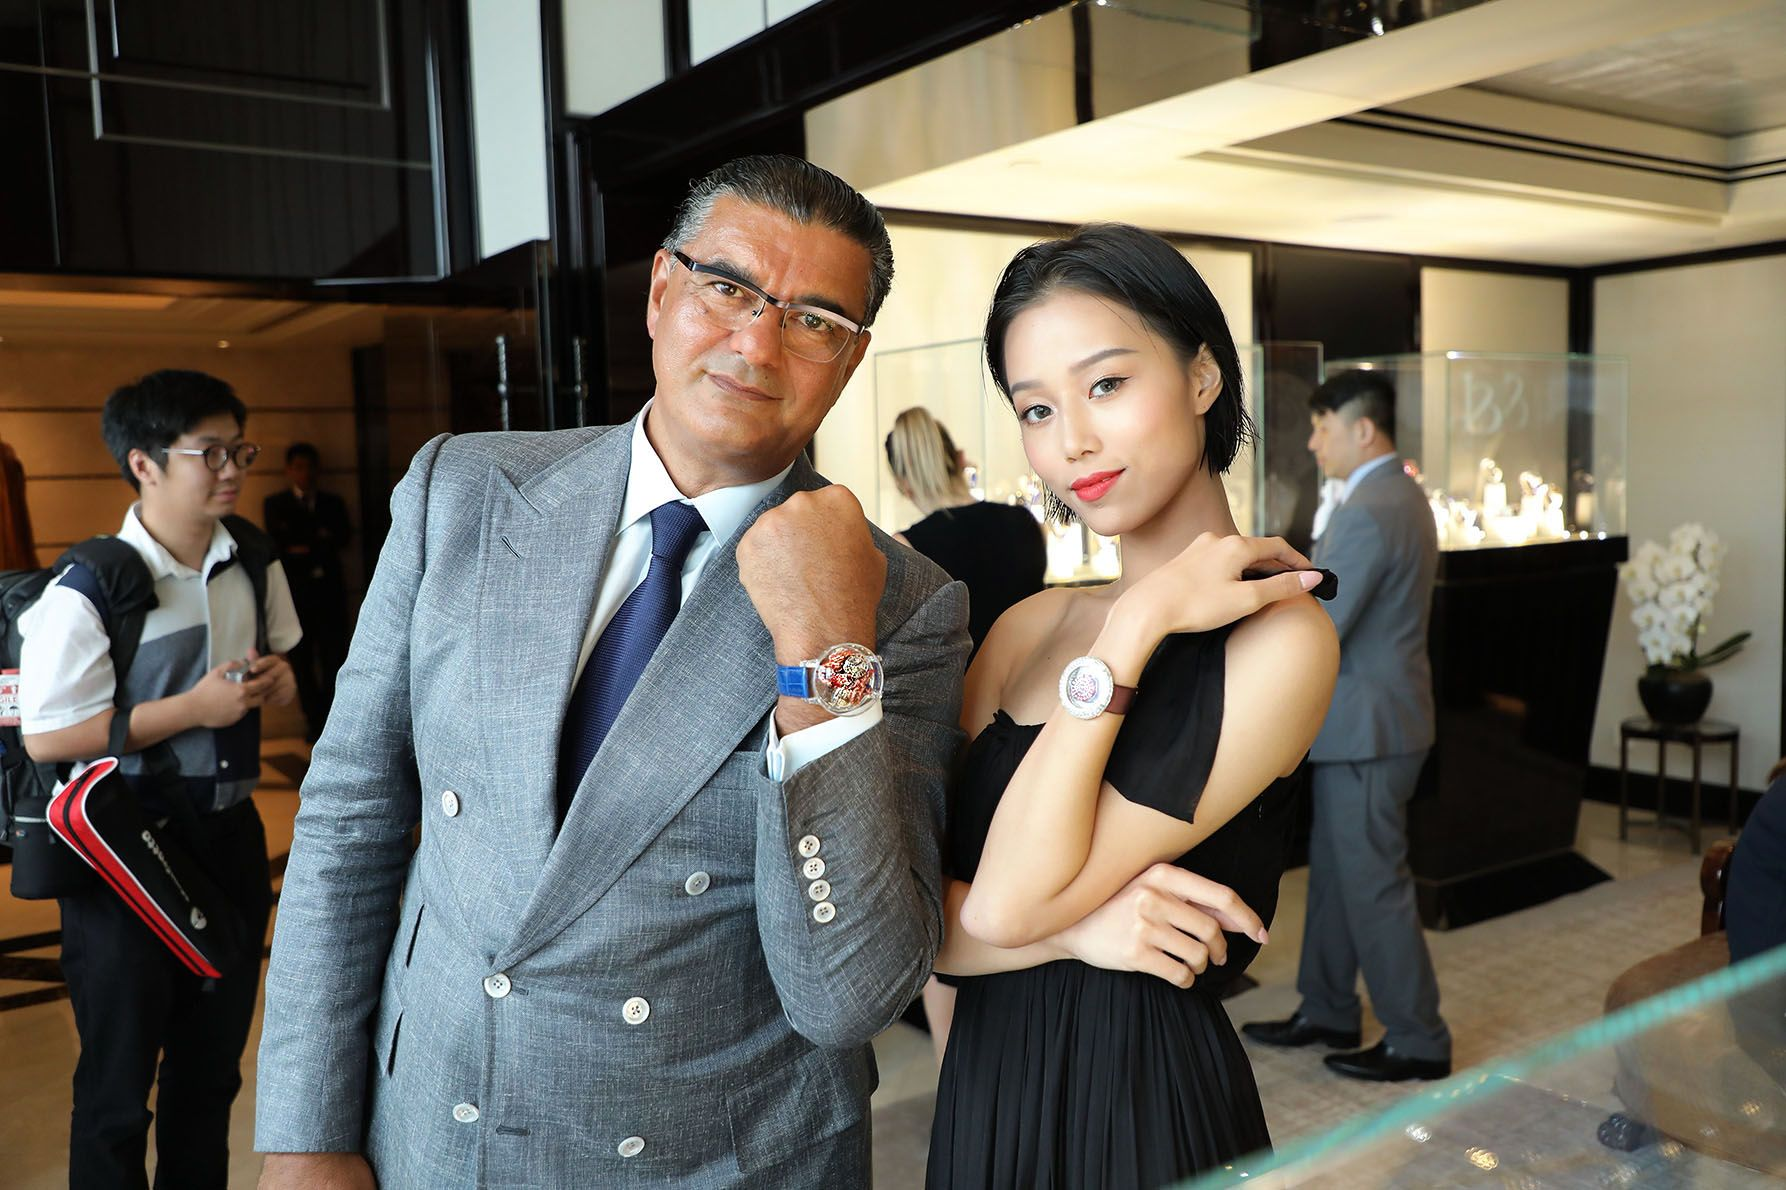 Hong Kong's Watch Collectors Are Some Of The Most Knowledgeable, Says Jacob & Co Founder